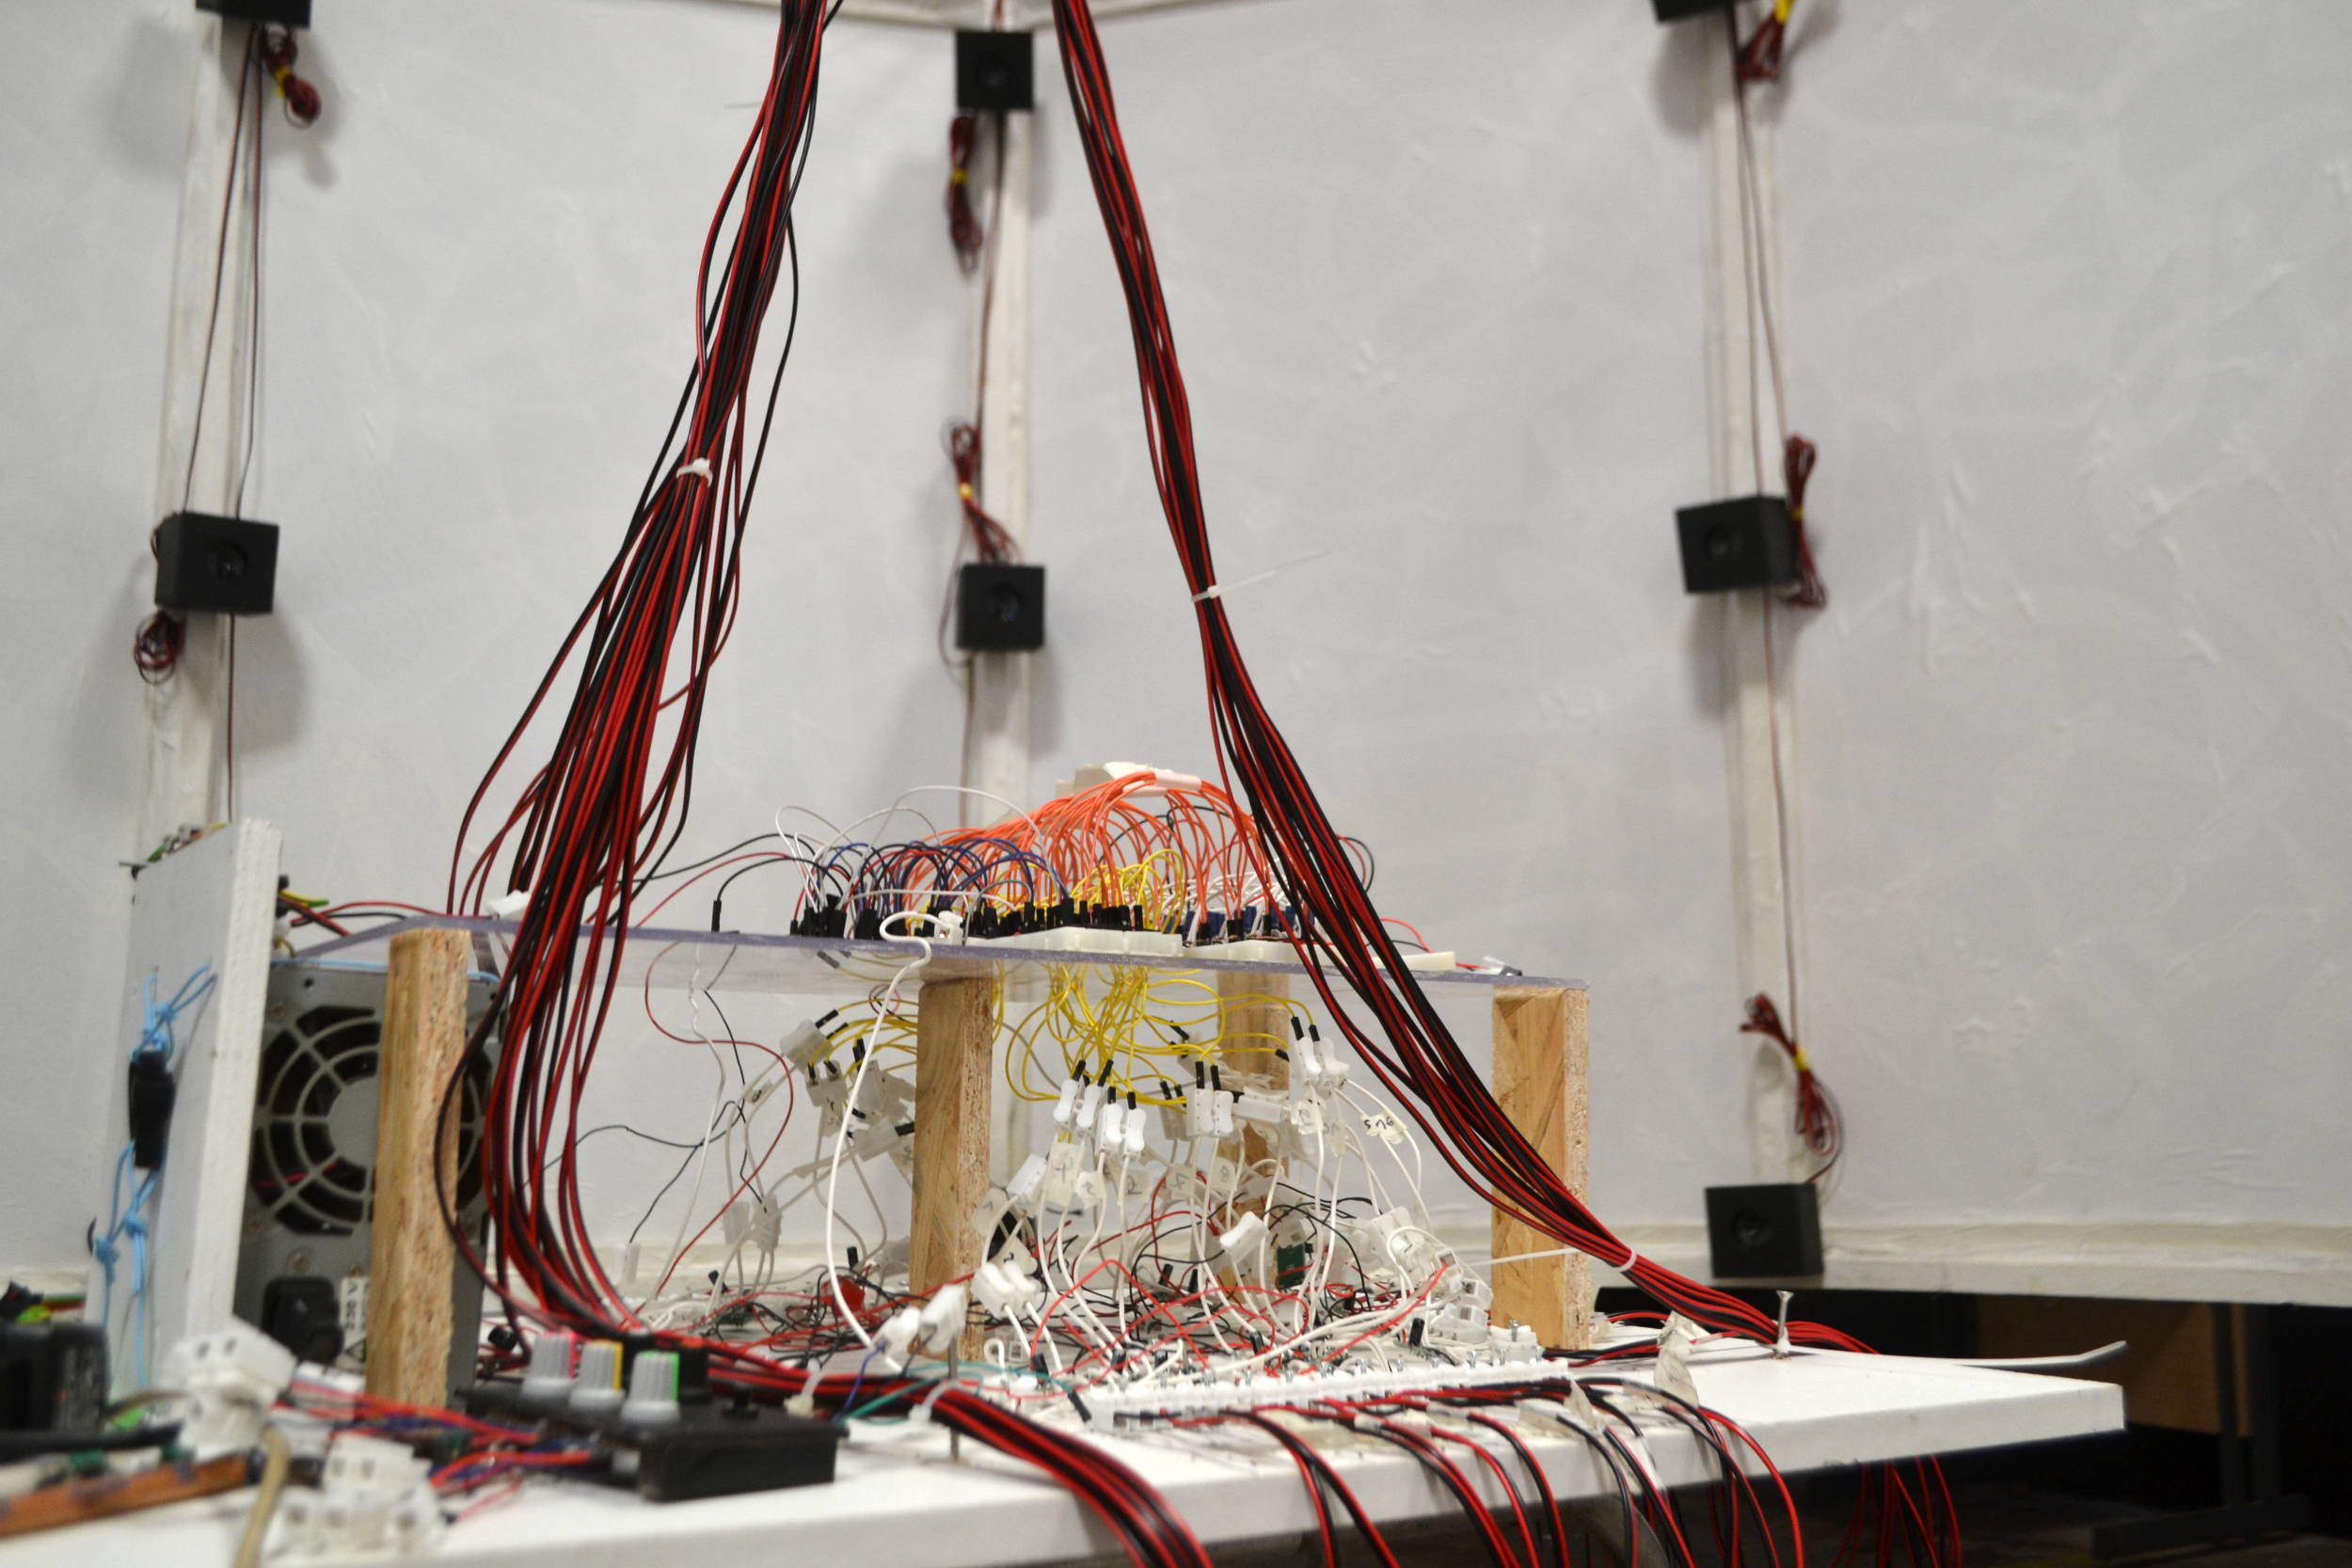 Thomas Bigot Electrical Wiring Channels 36 Sound Spatialisation System Protoype Collaborative Project With Frdric Villeneuve Sguier